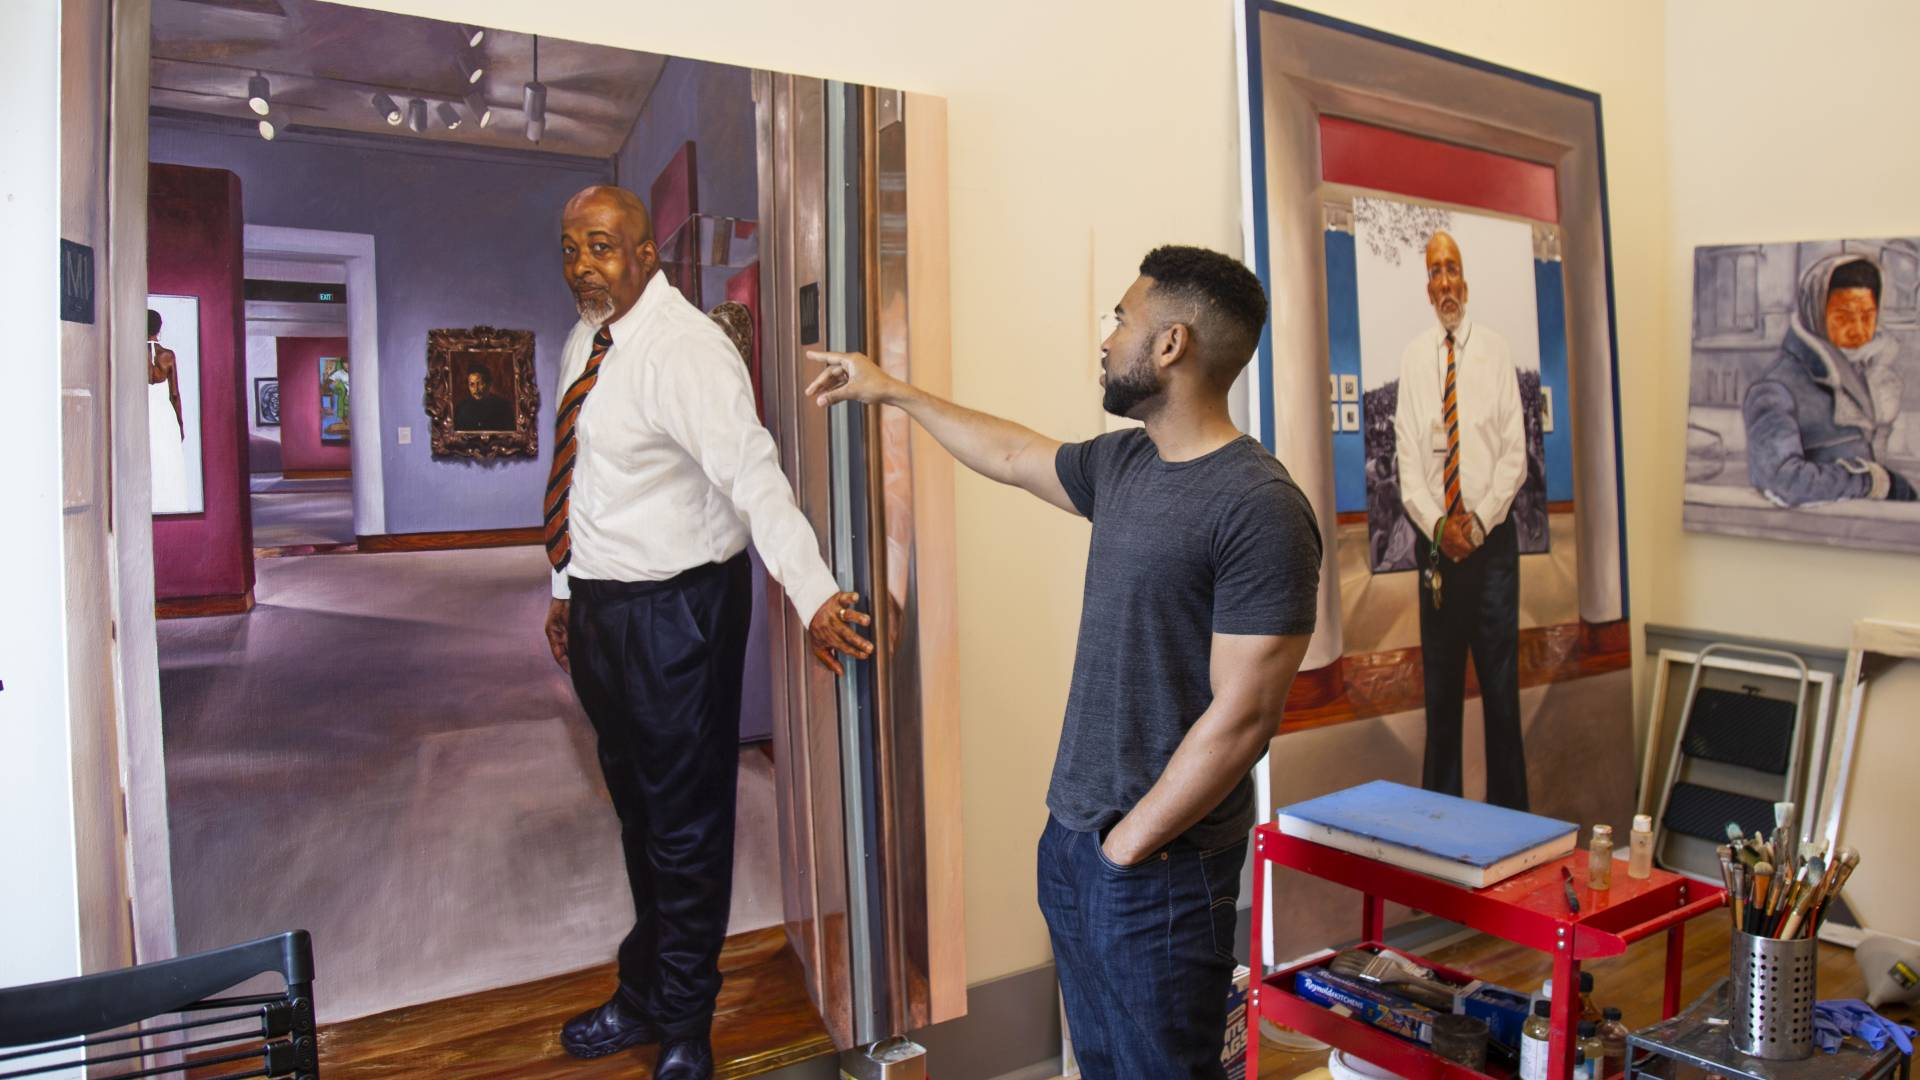 Mario Moore in studio pointing at painting